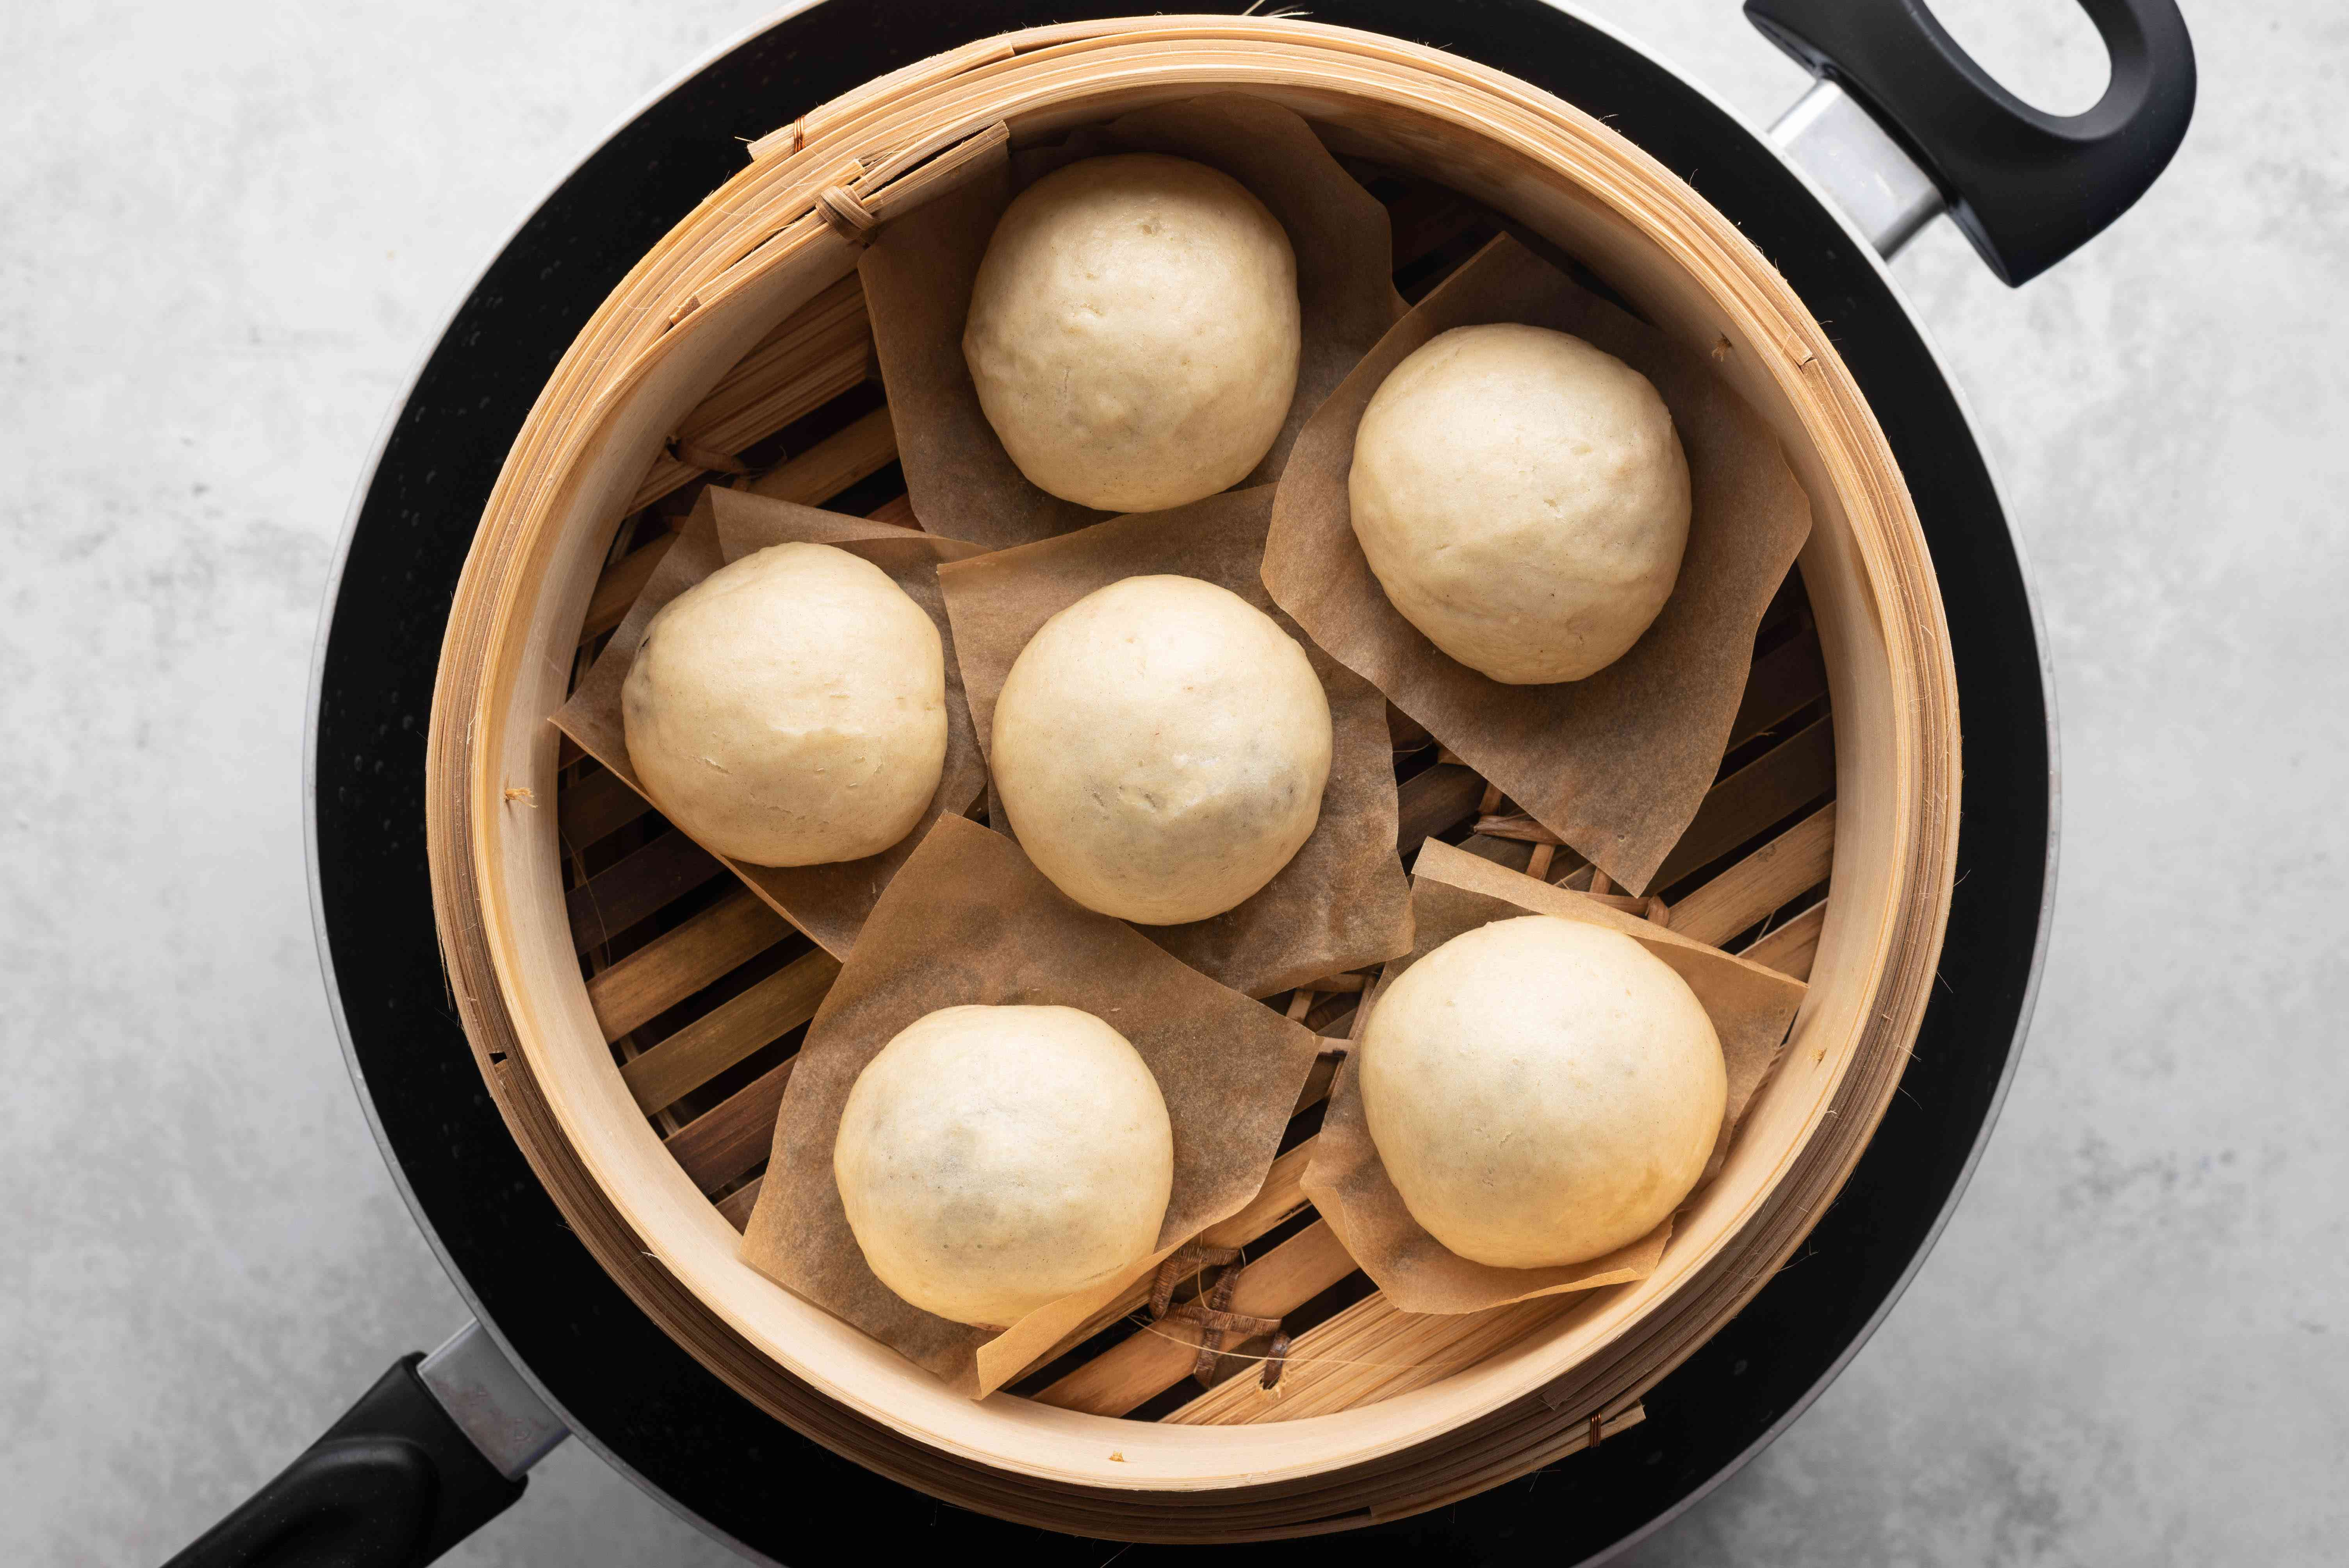 Manju, Japanese Steamed Cake With Sweet Red Bean Filling, in a steamer